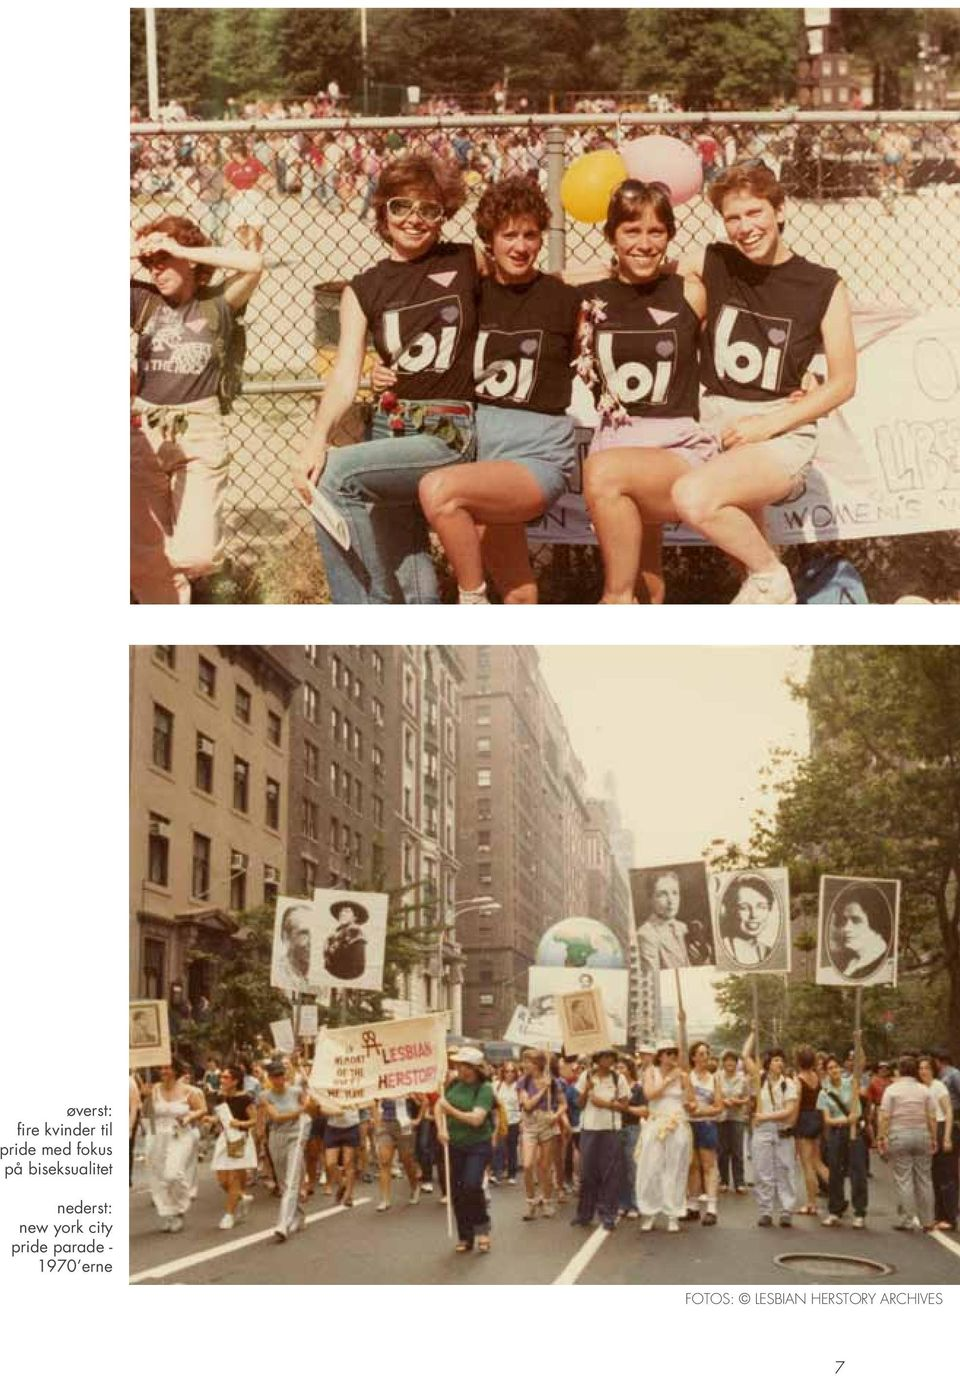 new york city pride parade - 1970